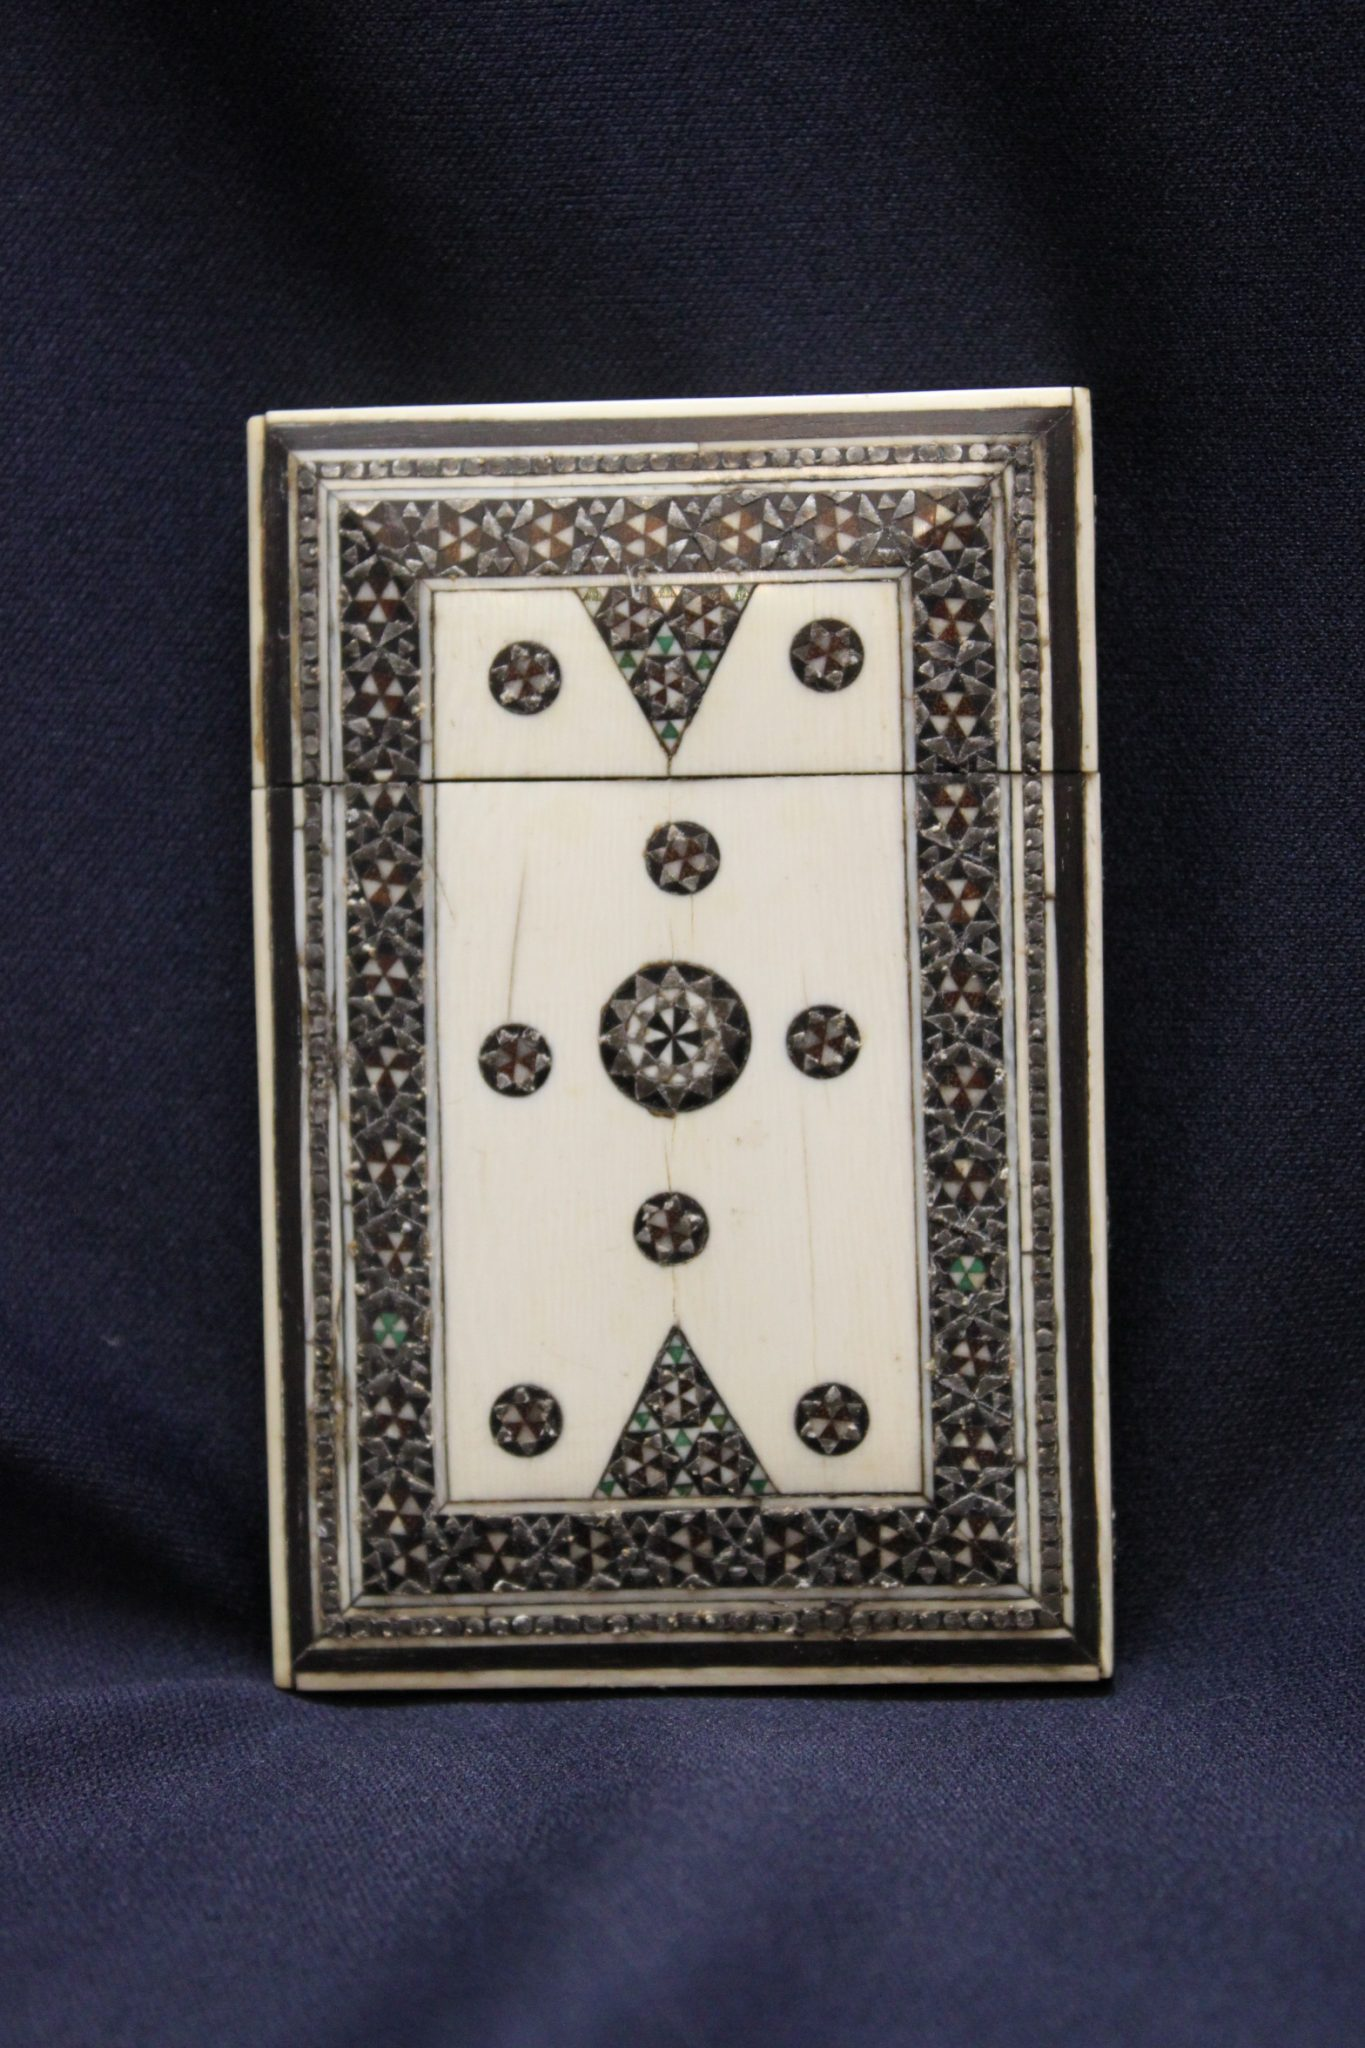 Sadeli mosaic work card case